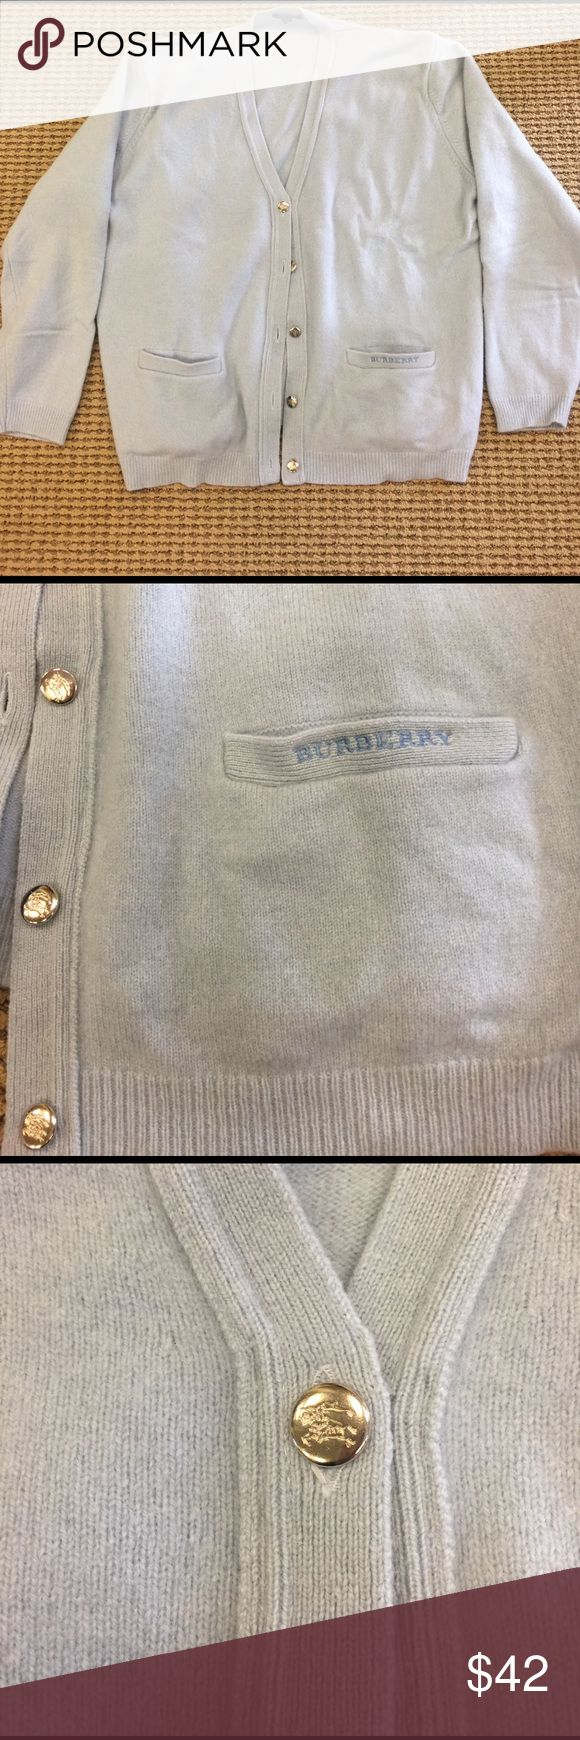 Burberry light blue wool cardigan boxy fit size XL Really soft baby blue wool Burberry cardigan. Super stylish boxy oversized fit. Would fit 10-16. Marked size euro 44. Low v neck. Logo on silver buttons and Burberry monogrammed on pocket. Cute and warm over a white t-shirt or blouse with jeans. Bundle for discount. Burberry Sweaters Cardigans